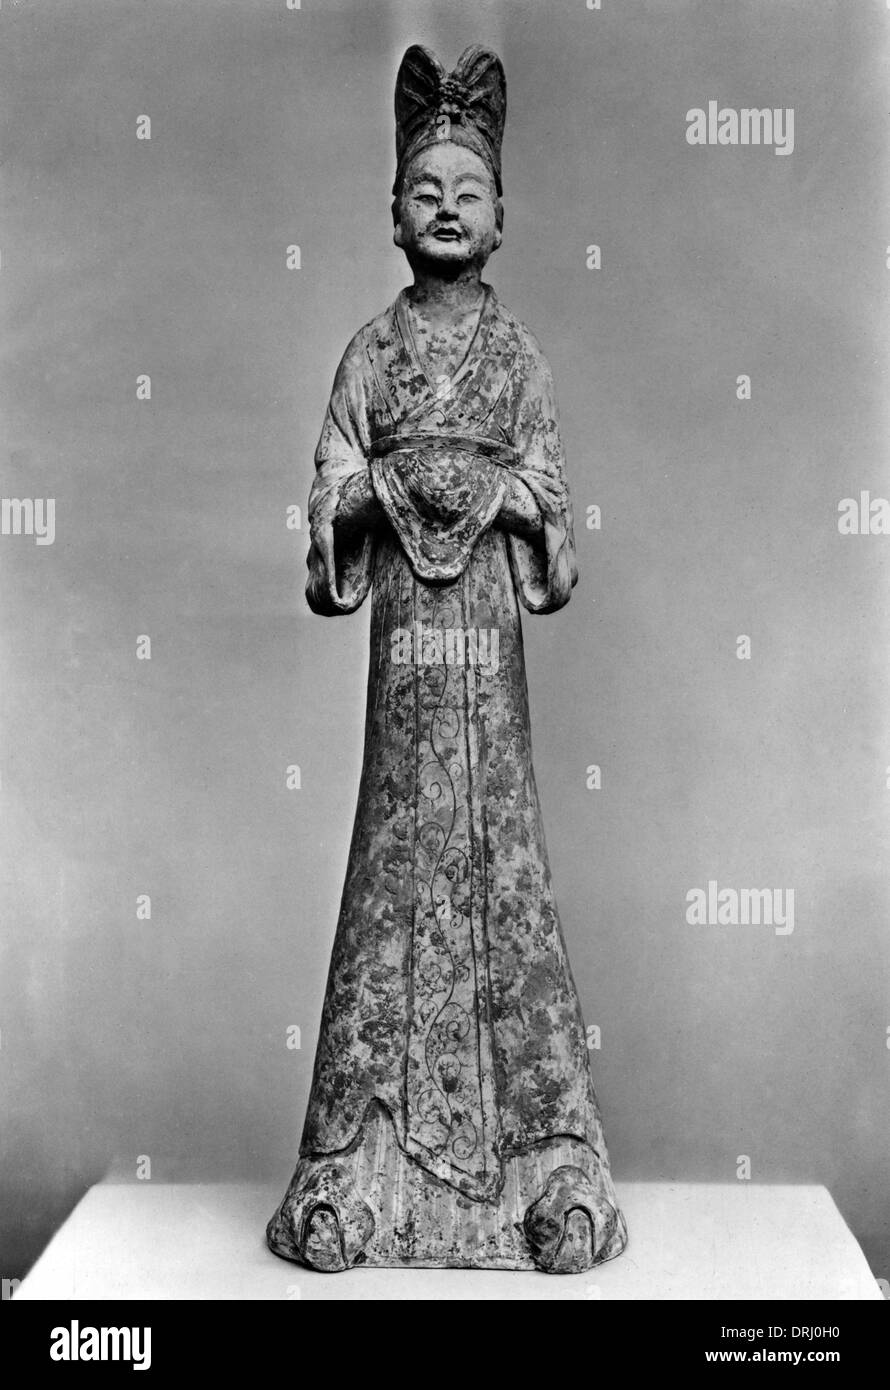 Chinese Tang Dynasty Pottery Tomb Figure of a Lady - Stock Image